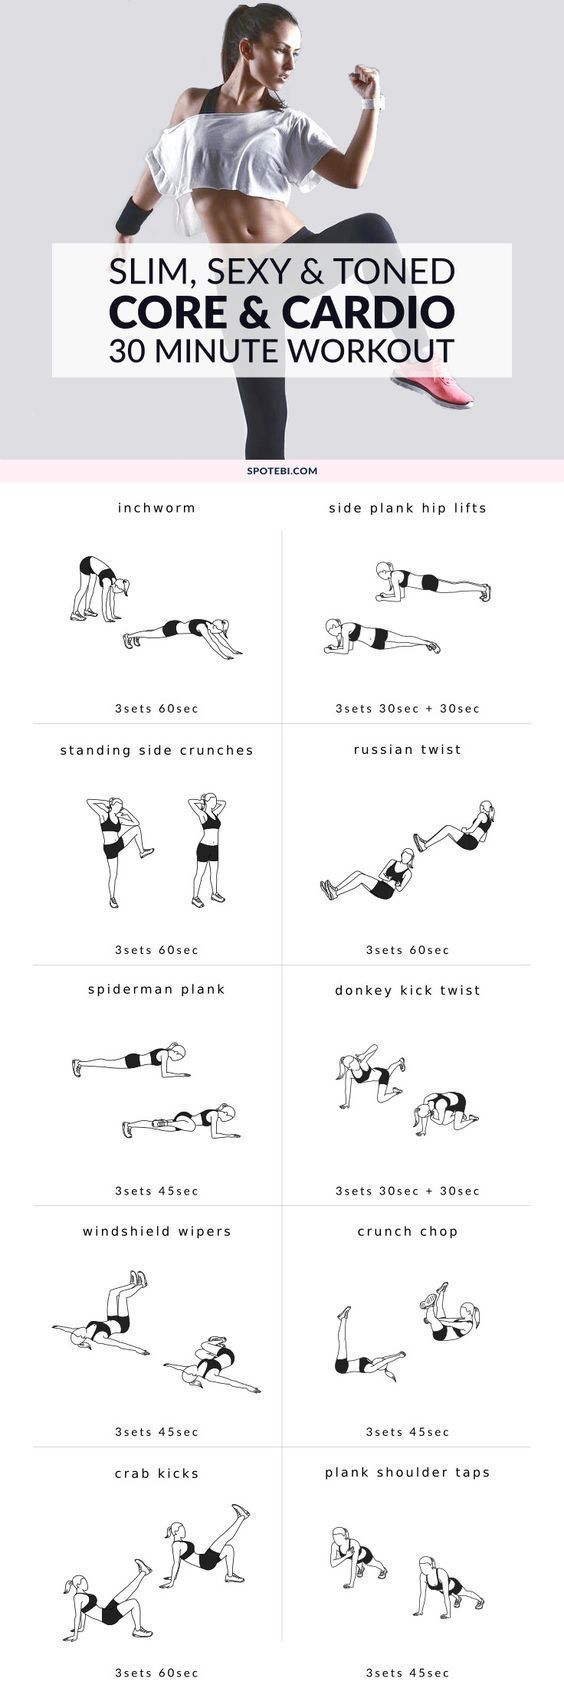 Six-pack abs, gain muscle or weight loss, these workout plan is great for beginners men and women.